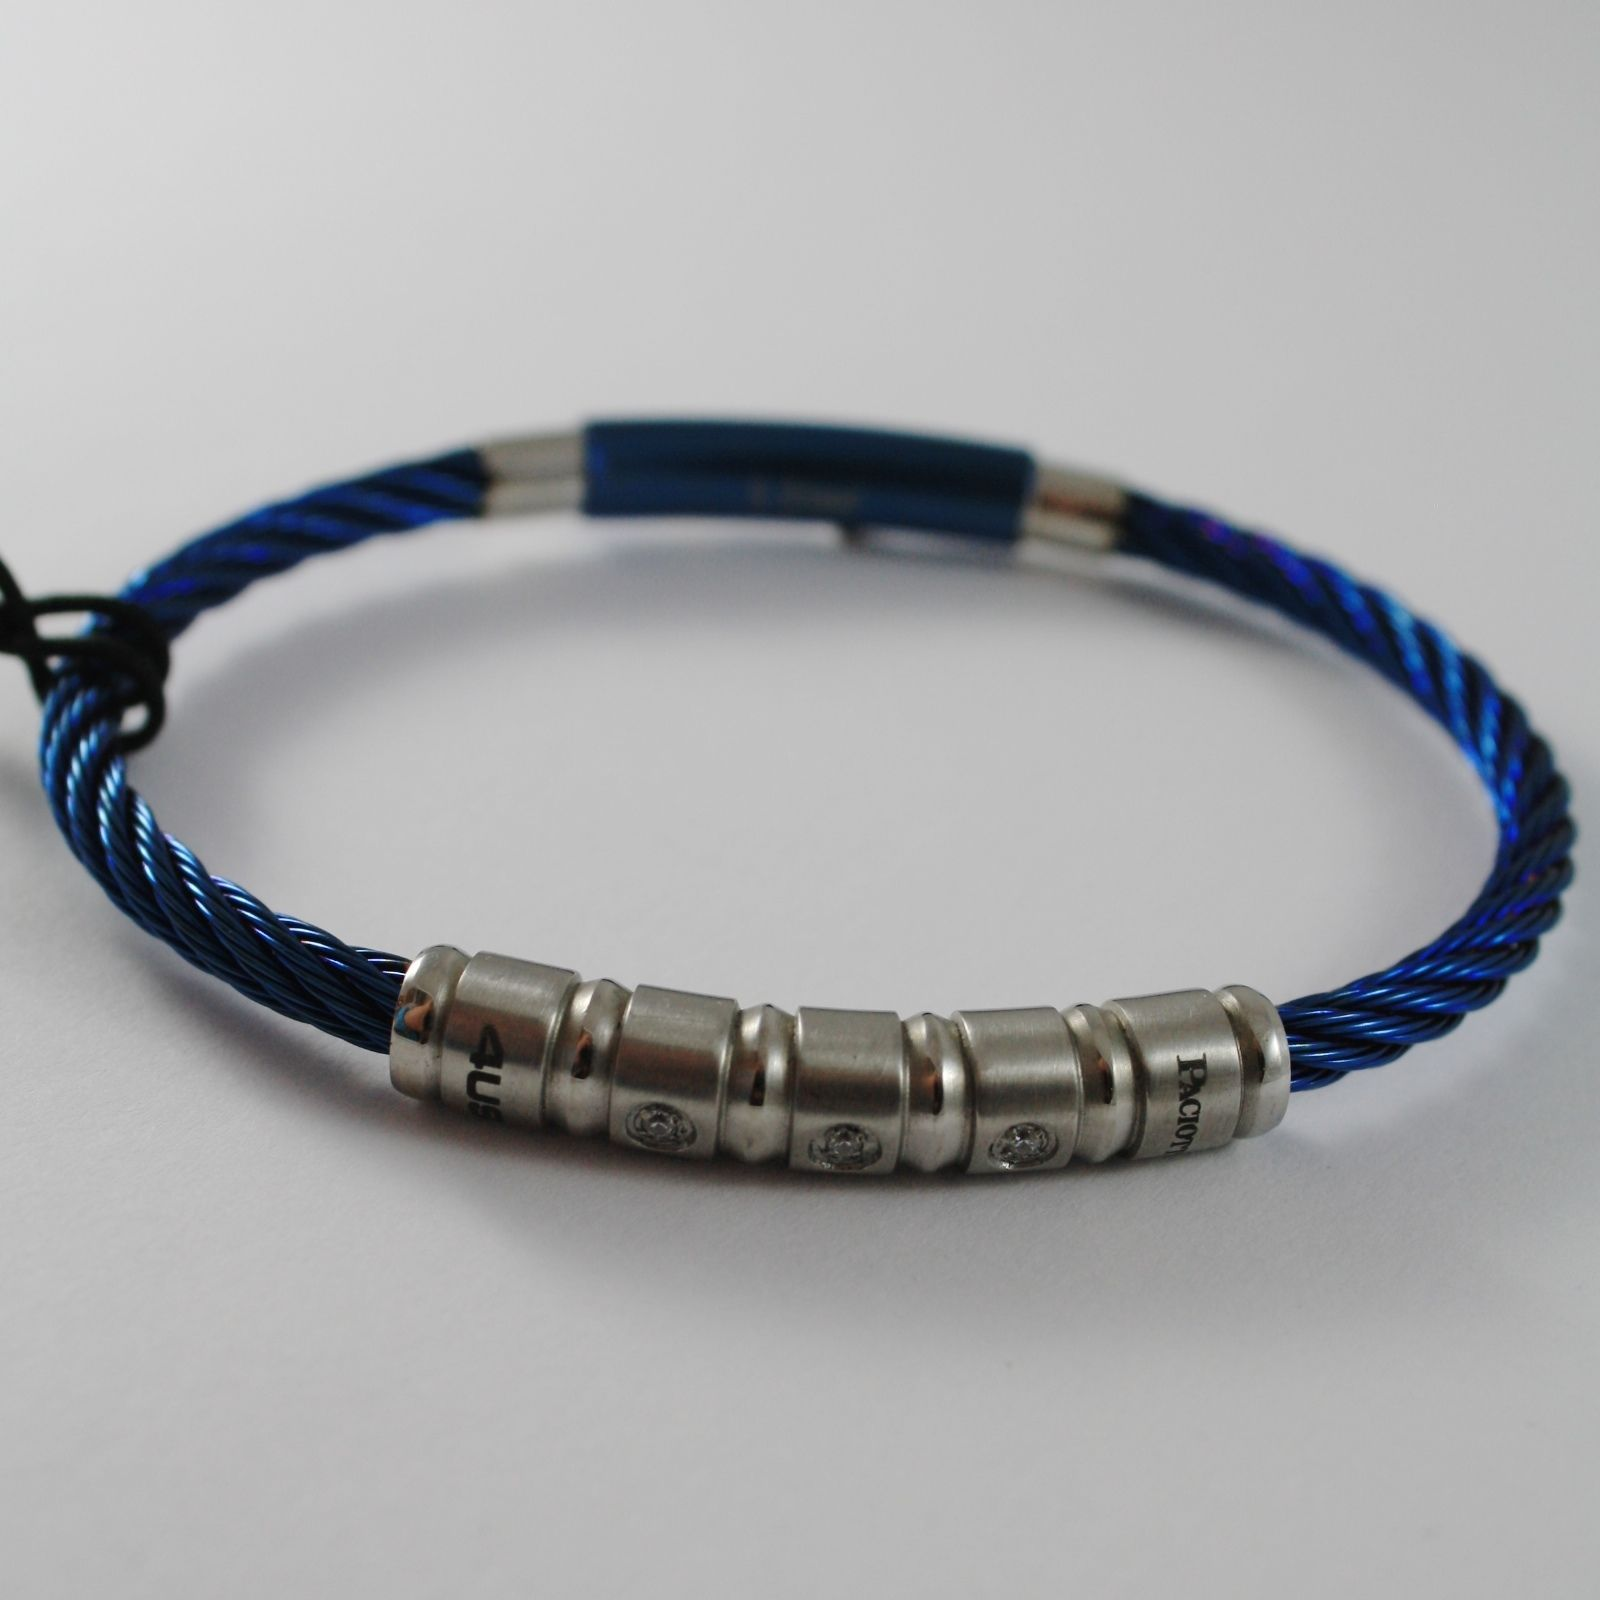 STAINLESS BLUE STEEL WIRE CABLE RIGID ZIRCONIA BRACELET 4US BY CESARE PACIOTTI